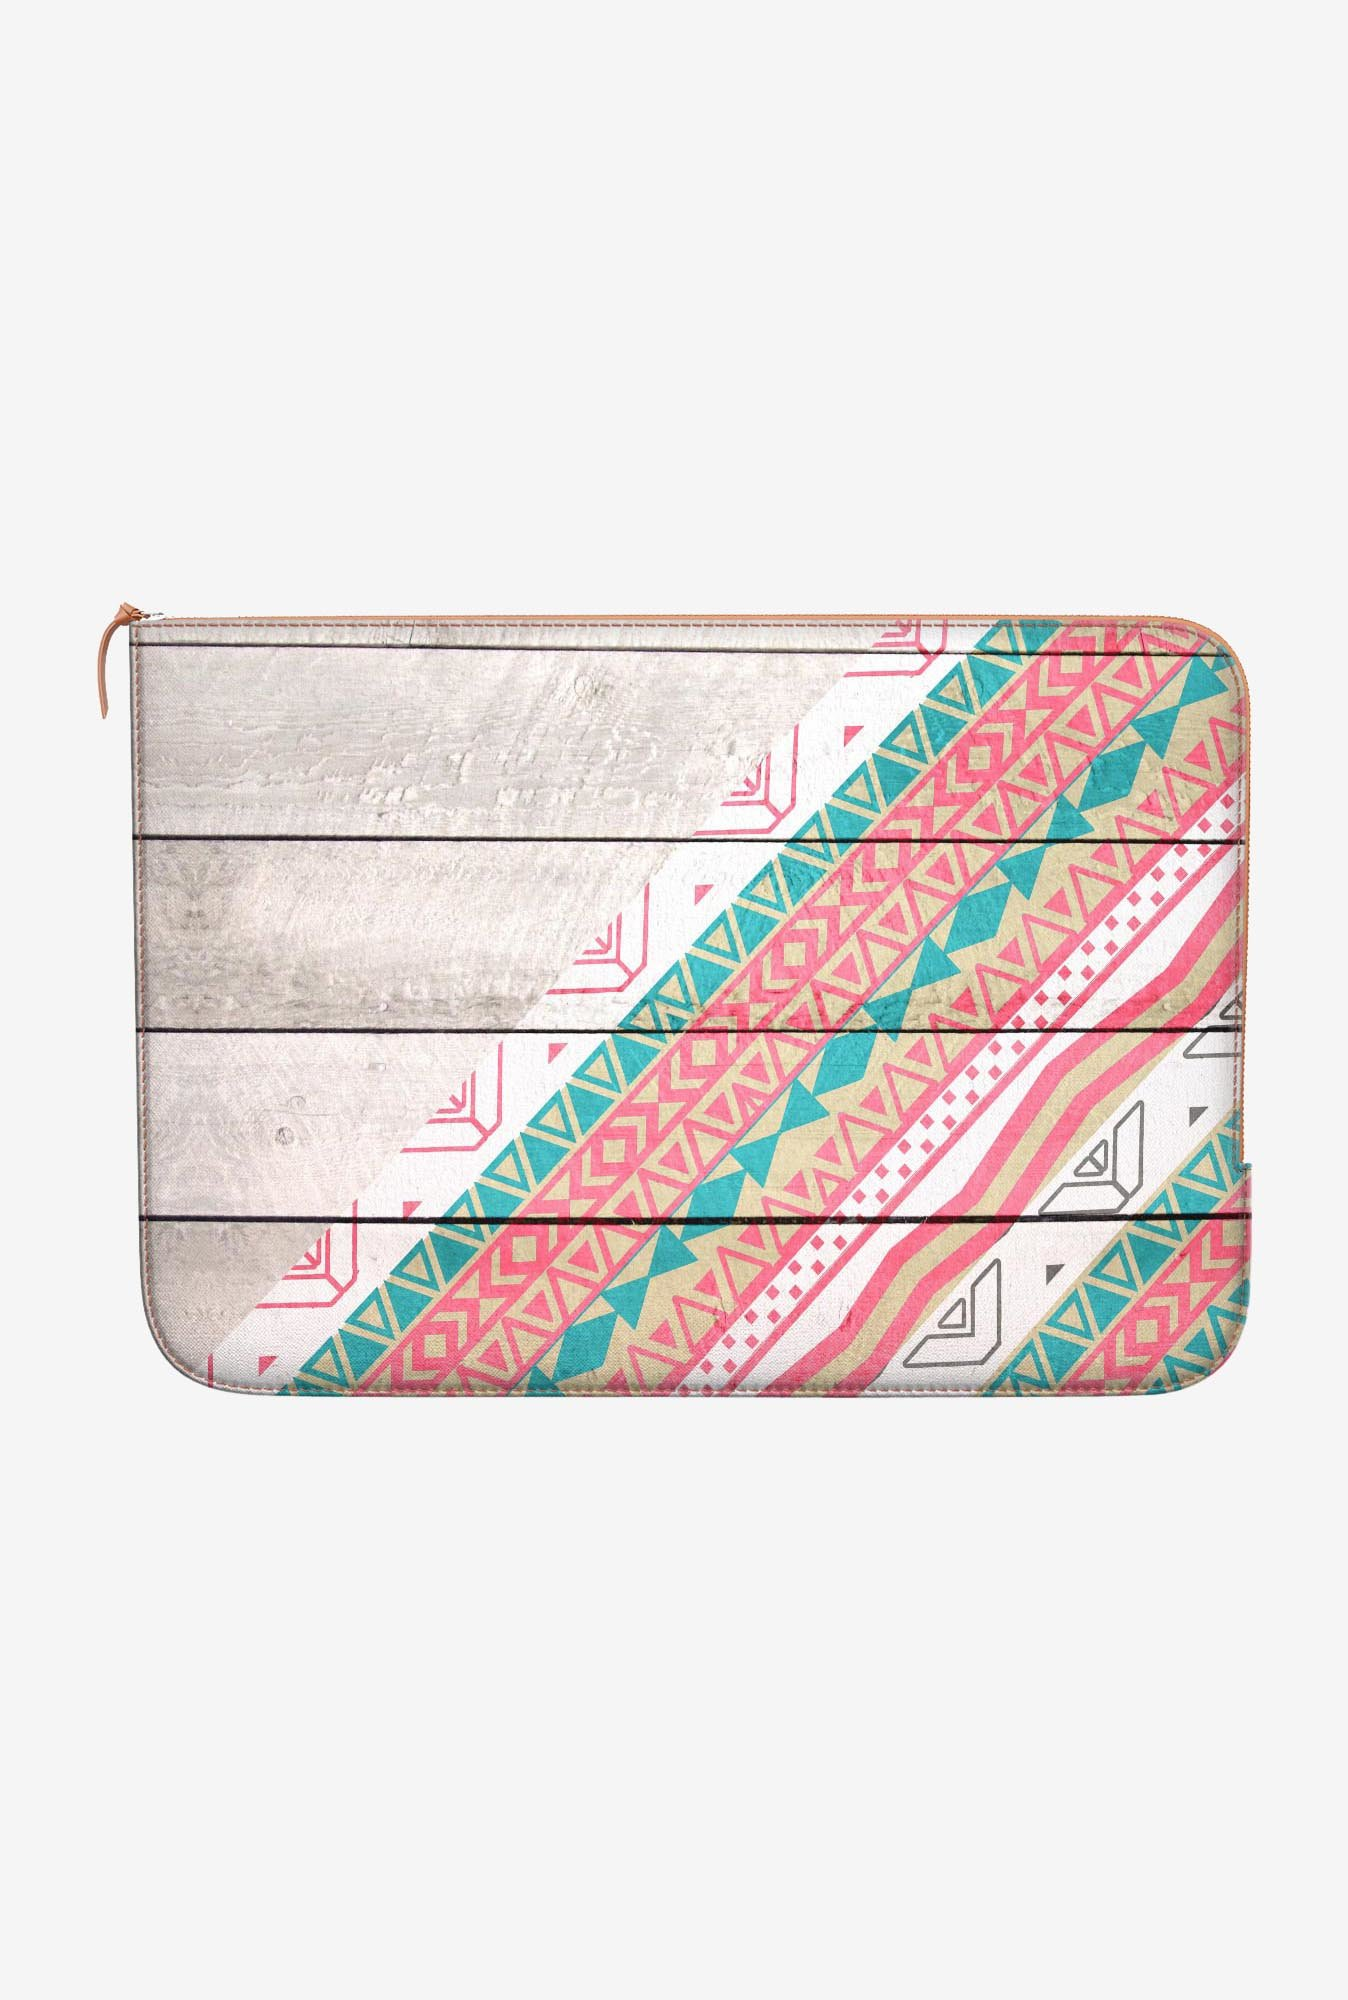 DailyObjects Andes Tribal MacBook Air 13 Zippered Sleeve